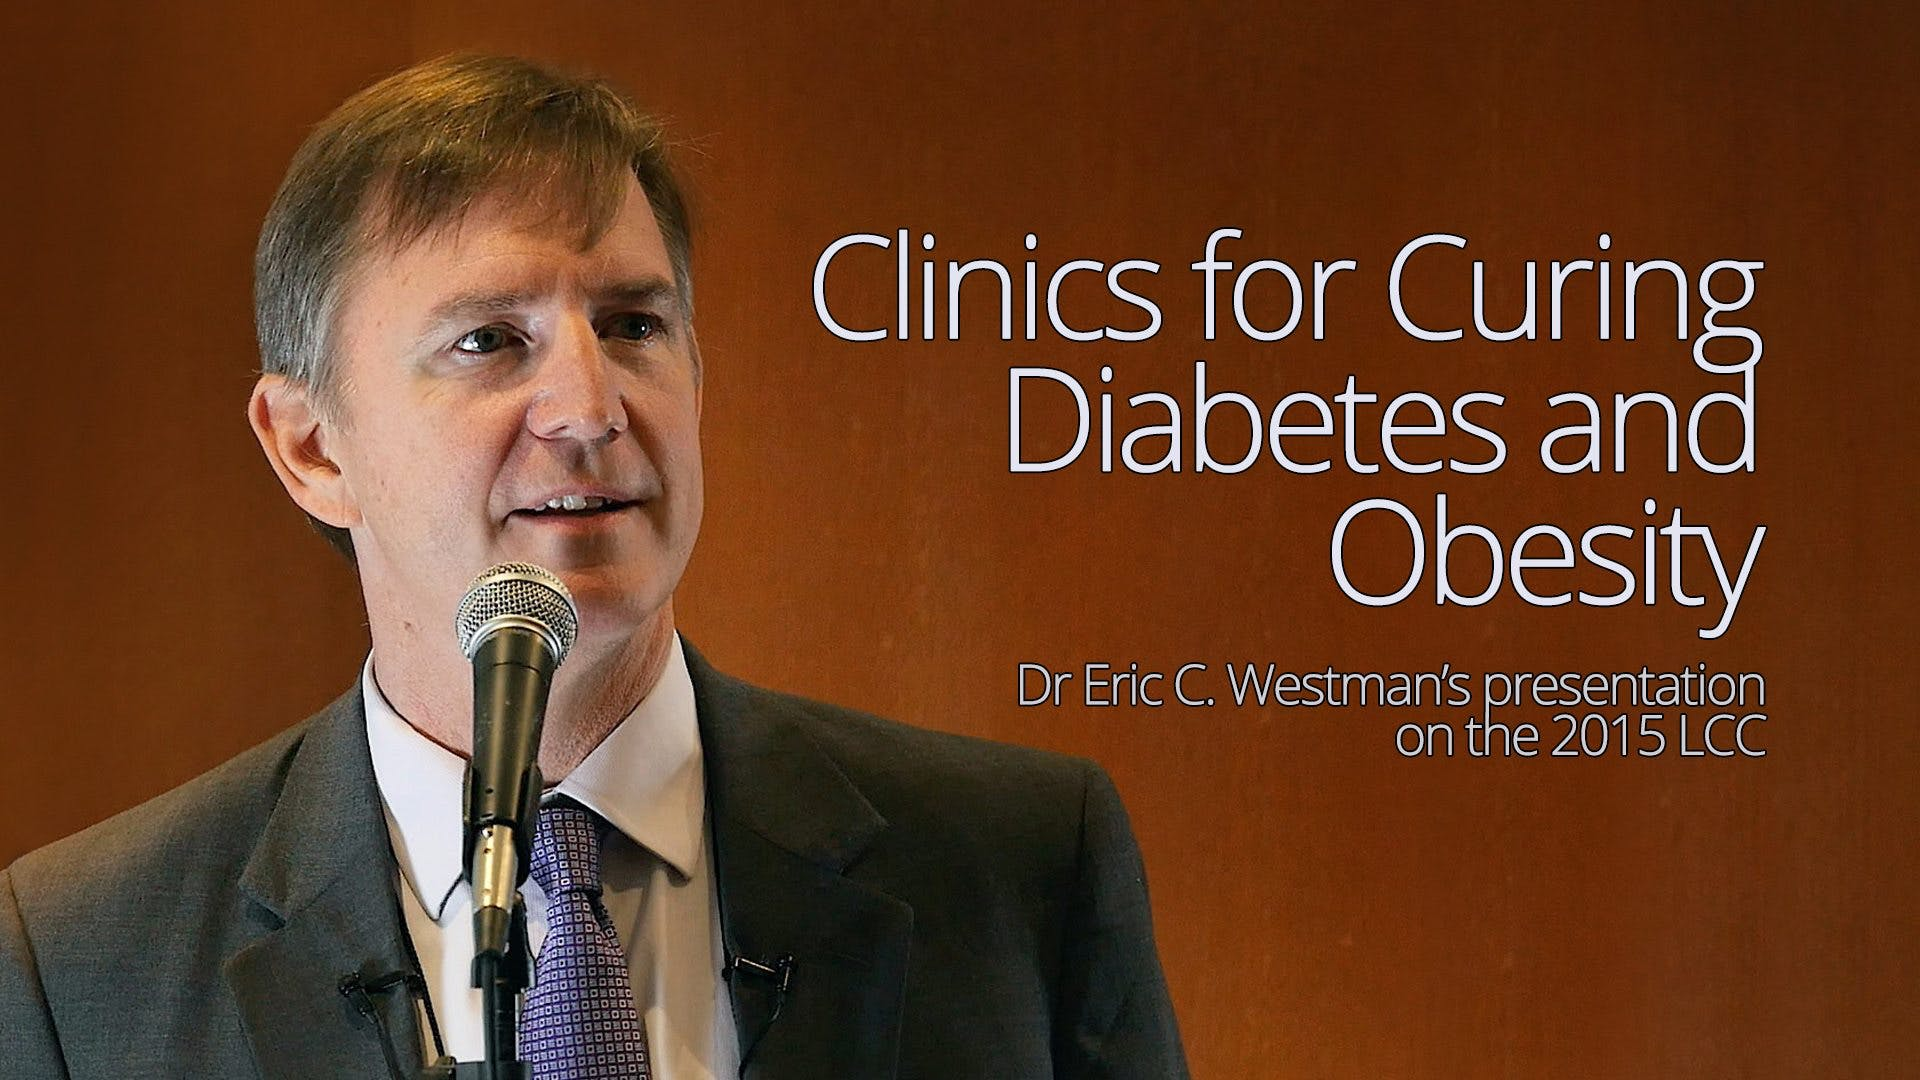 Clinics for curing diabetes and obesity